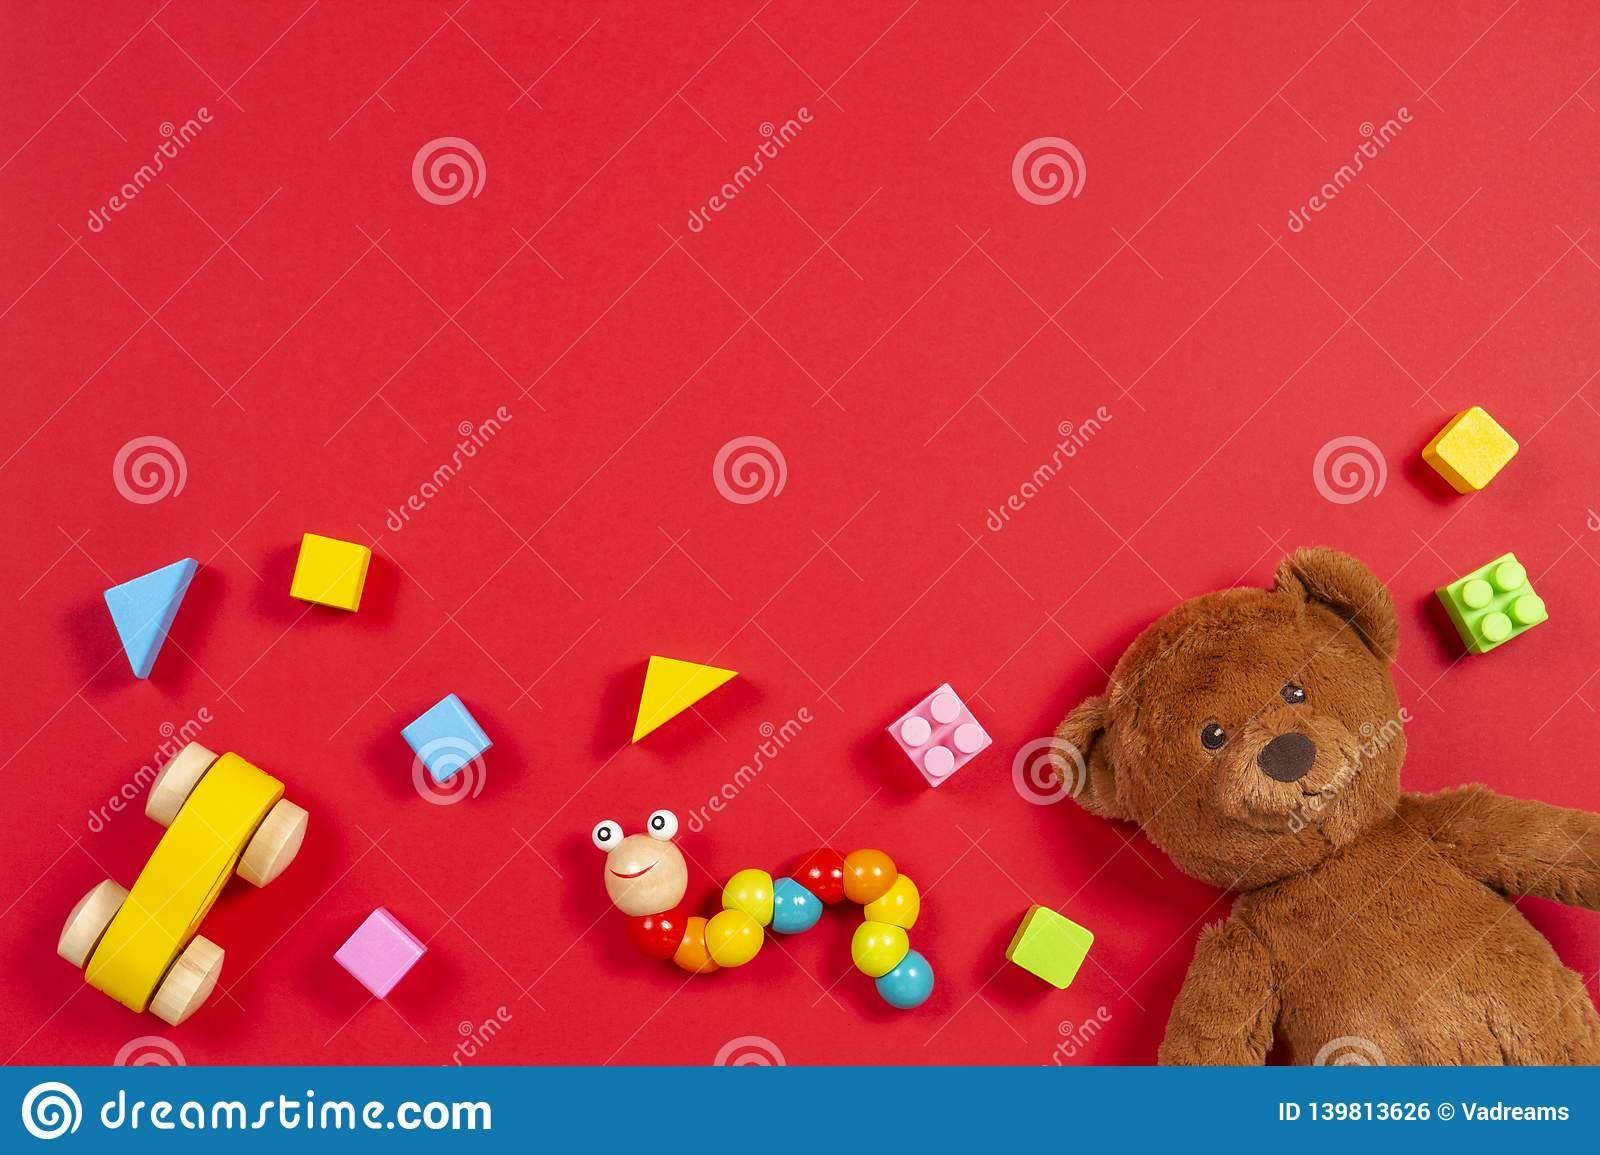 Baby Kids Toys Background Teddy Bear Wooden Car Colorful Bricks On Red Background Stock Photo Image Of Babyshower Doll 139813626